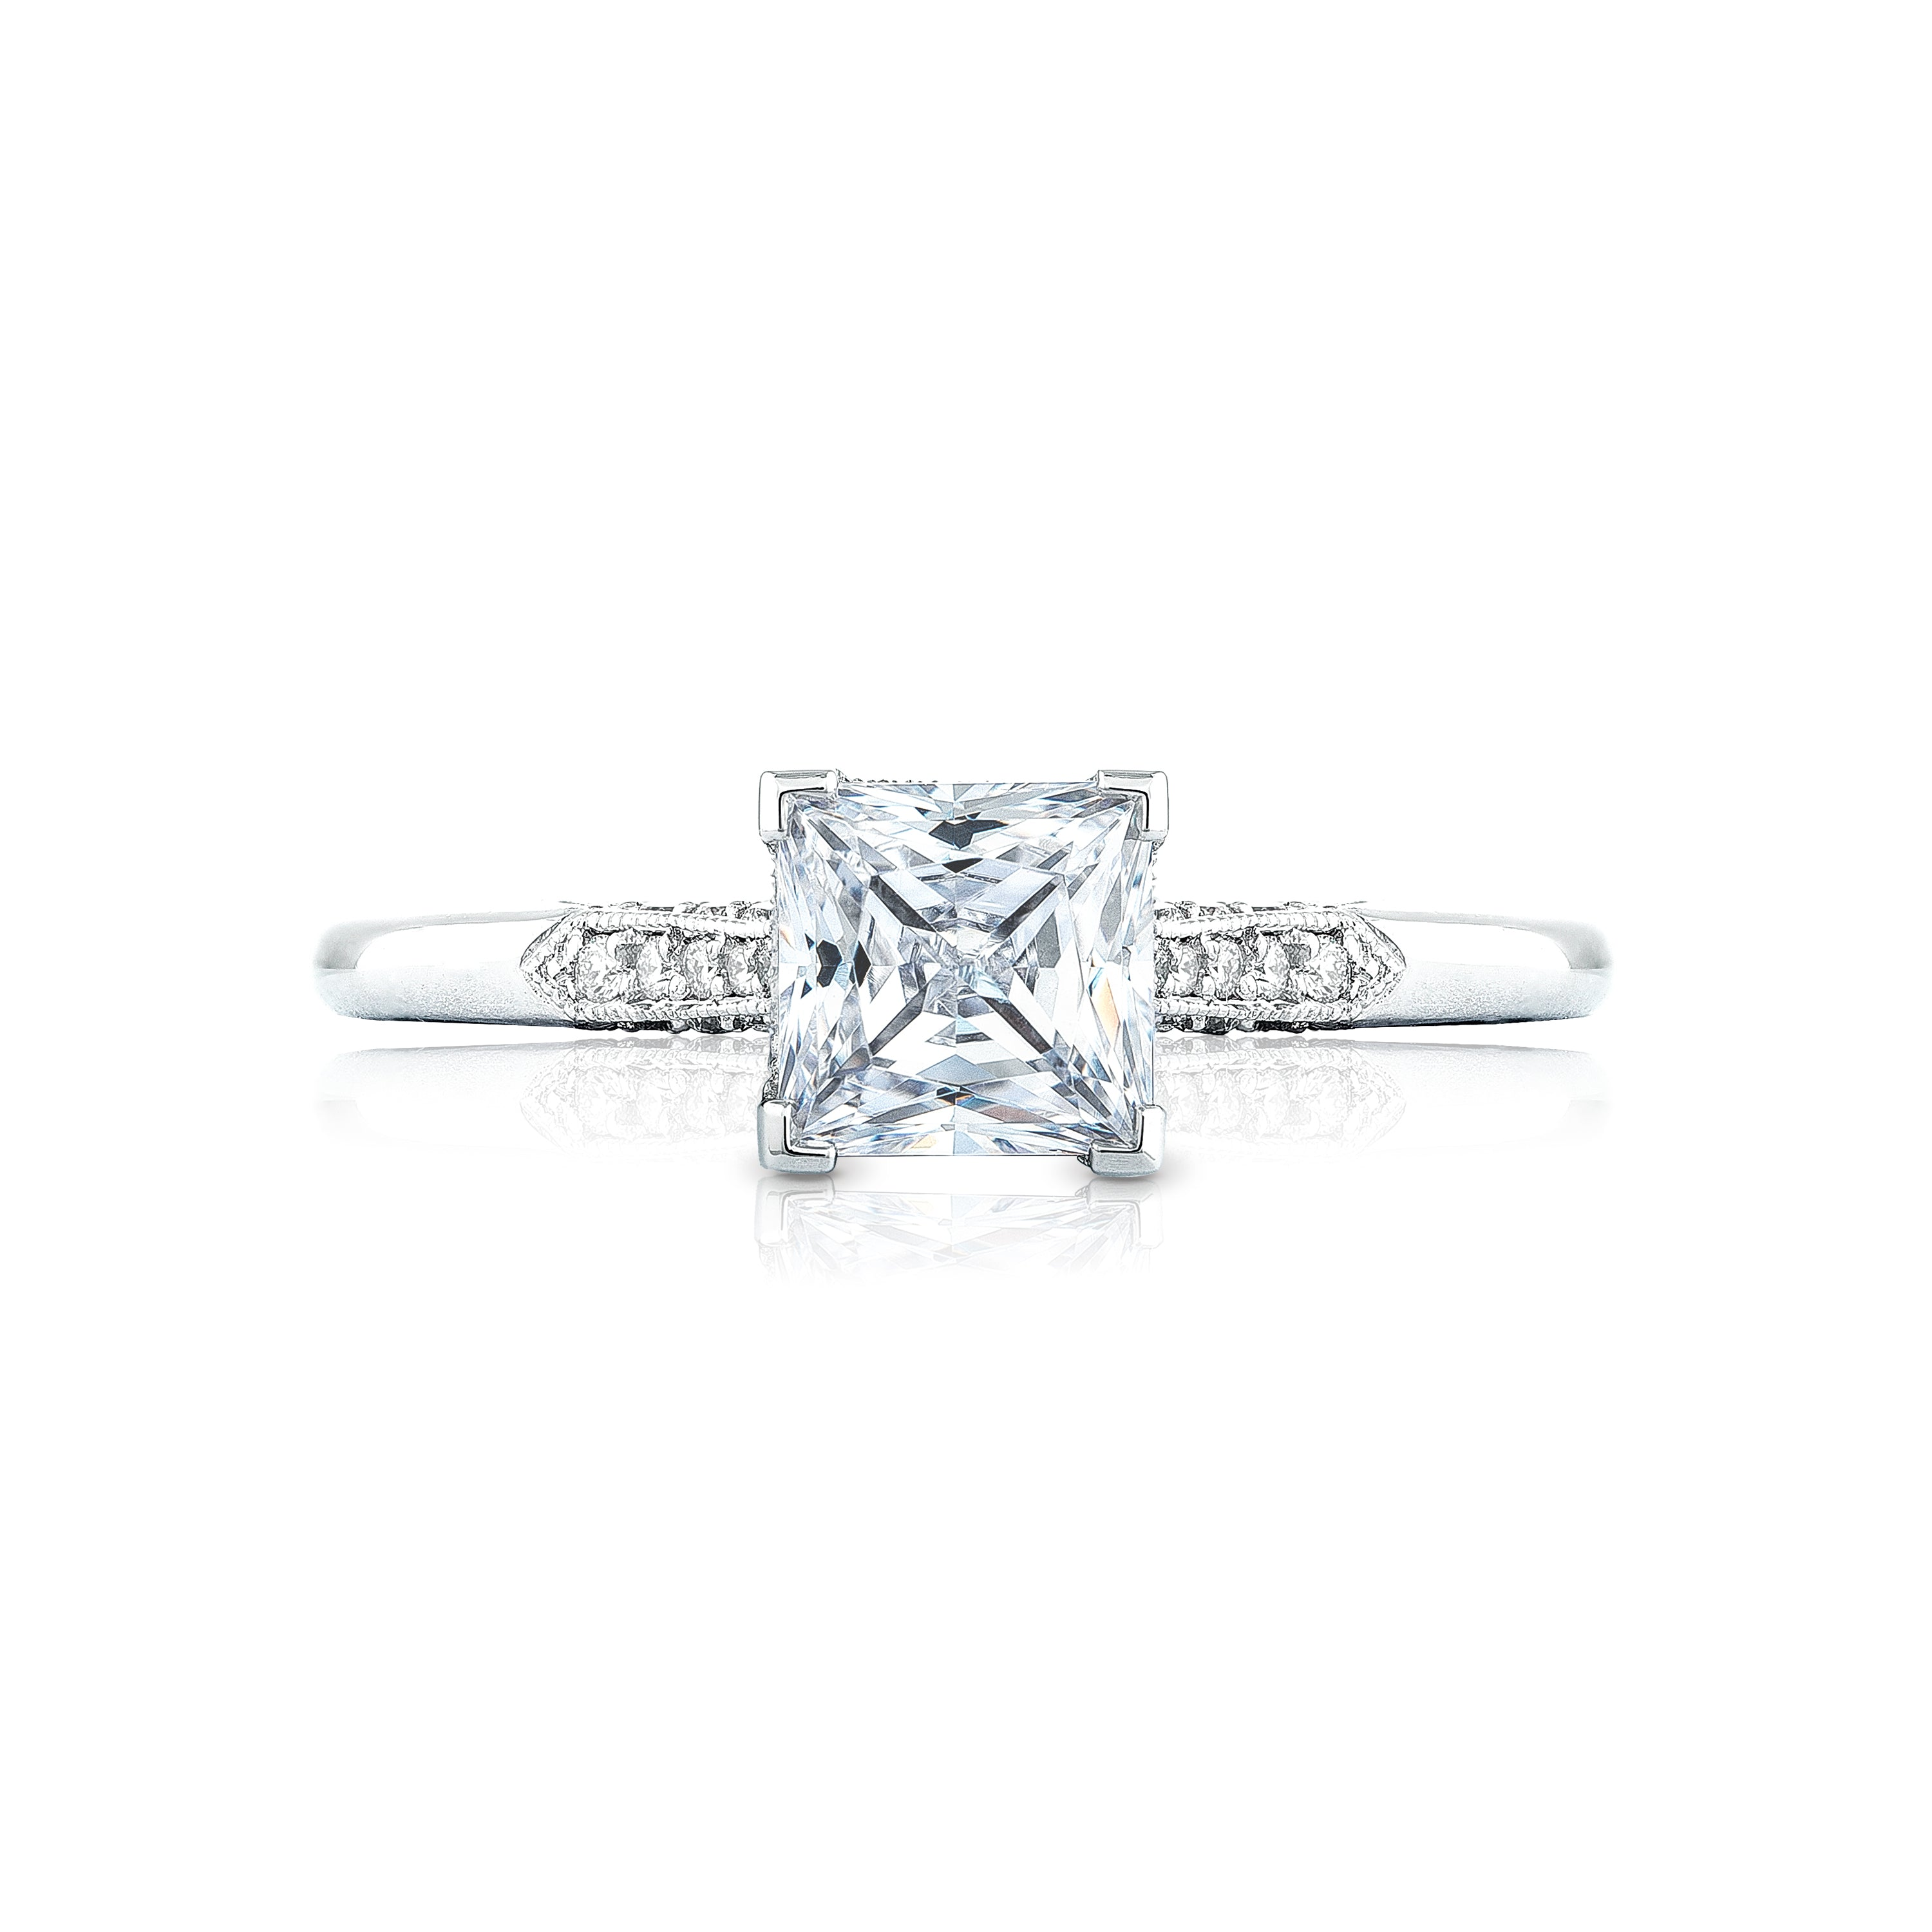 Tacori 'Simply Tacori' 5.5mm Princess Engagement Ring